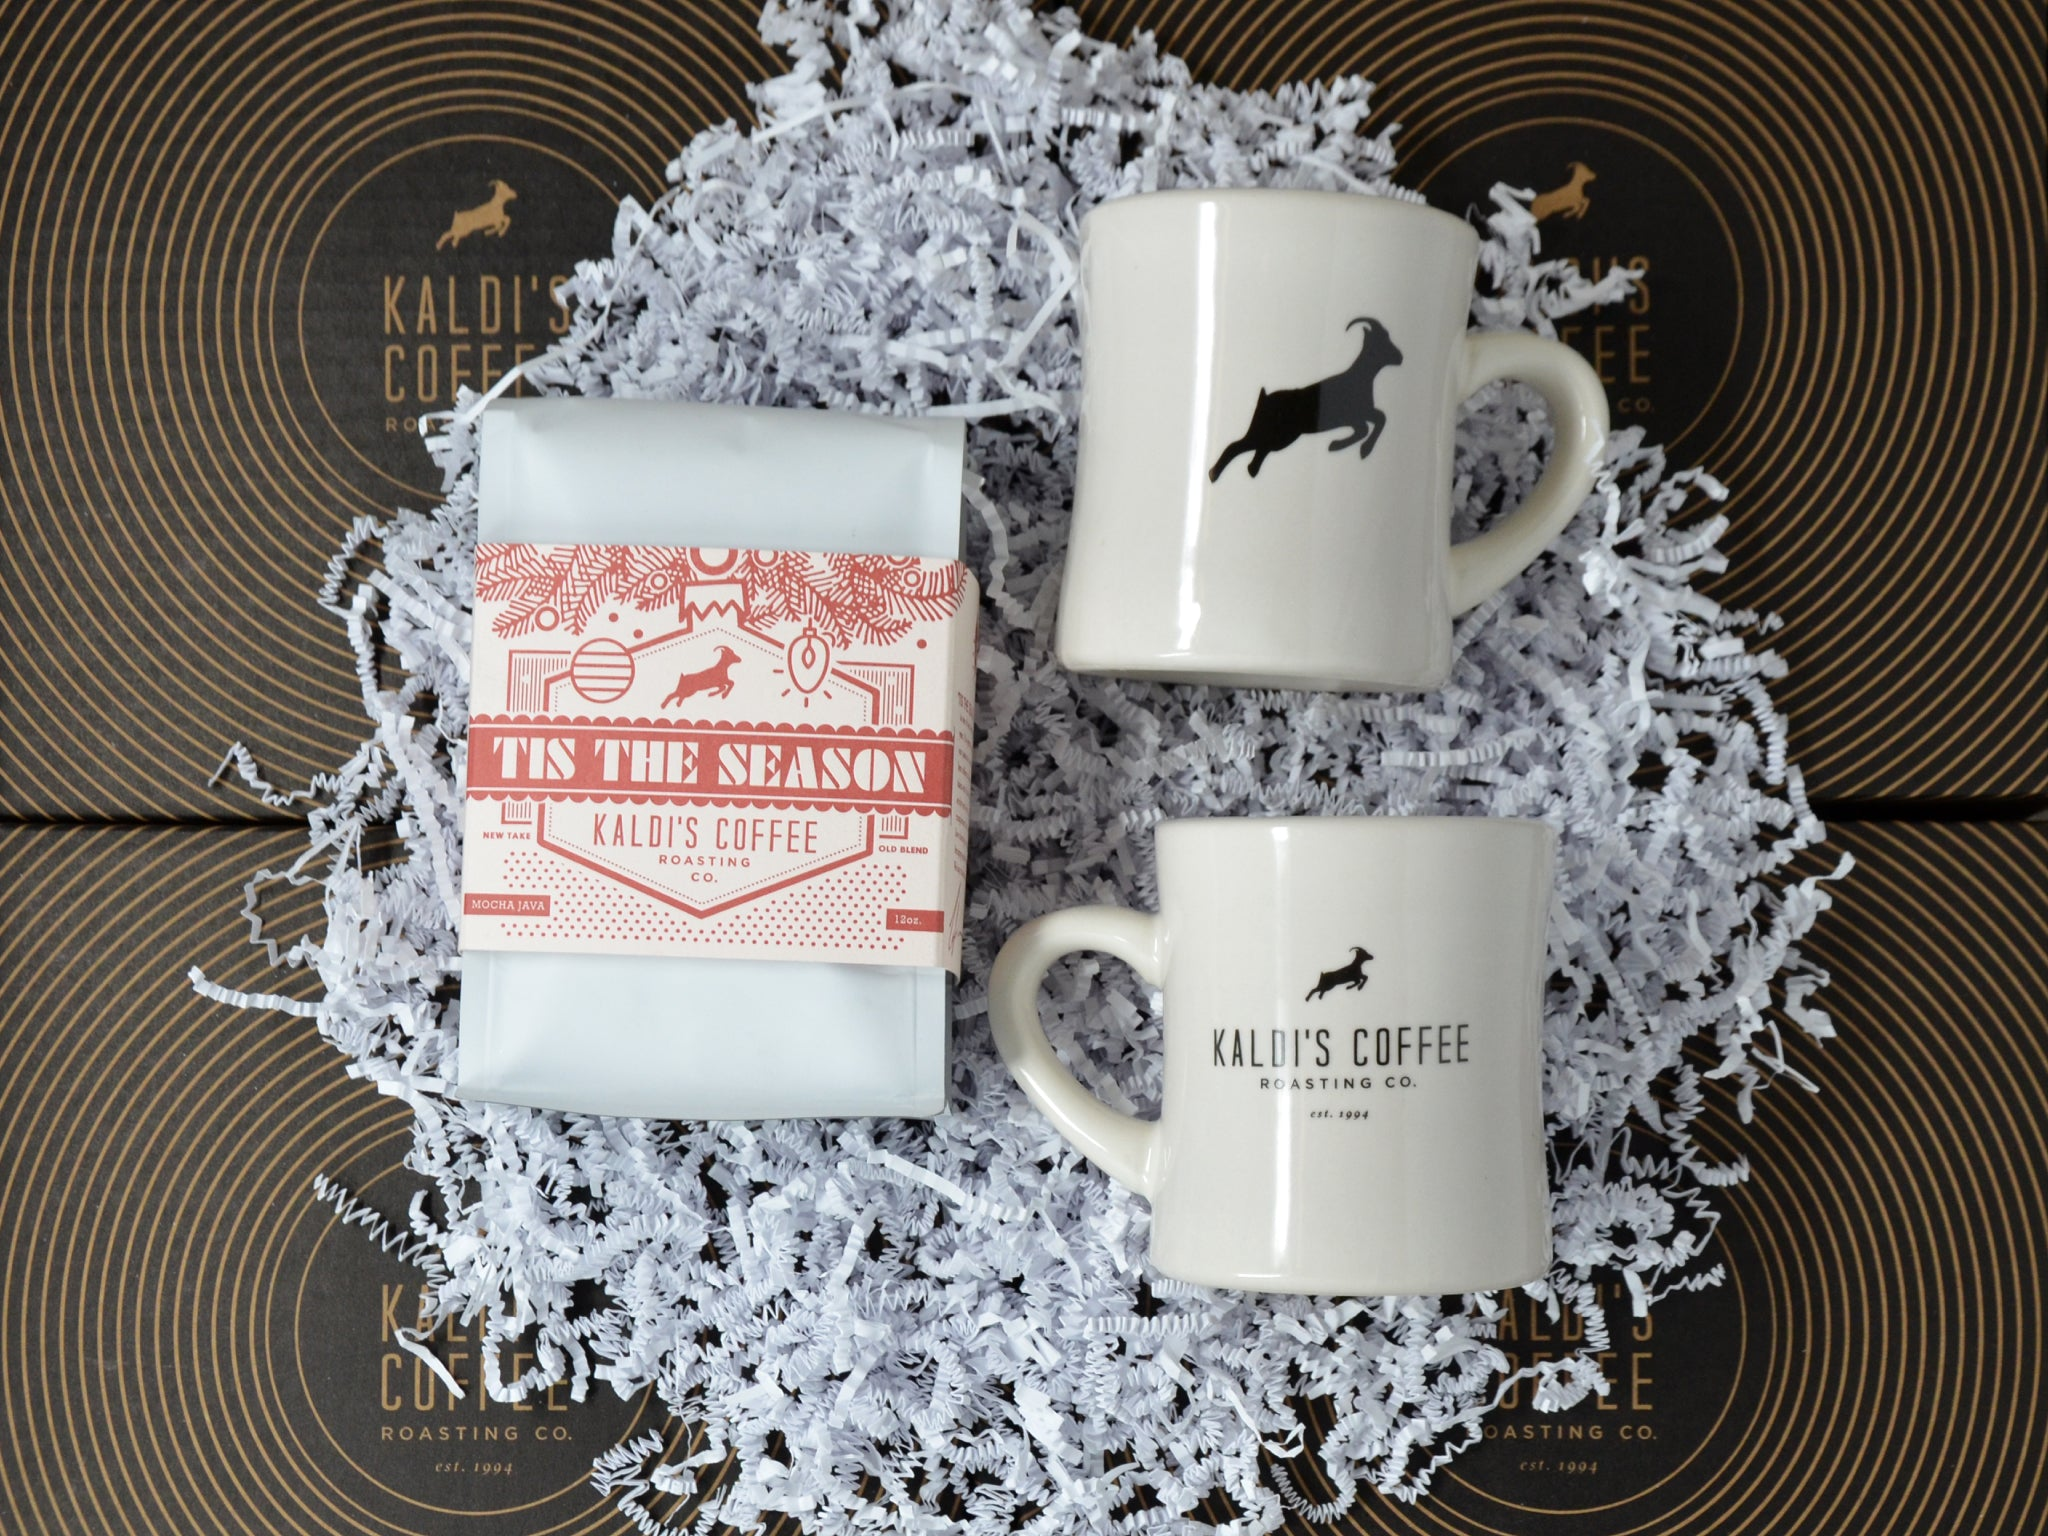 Tis the Season and 2 Coffee Diner Mugs | Holiday Gift Box, $32.99